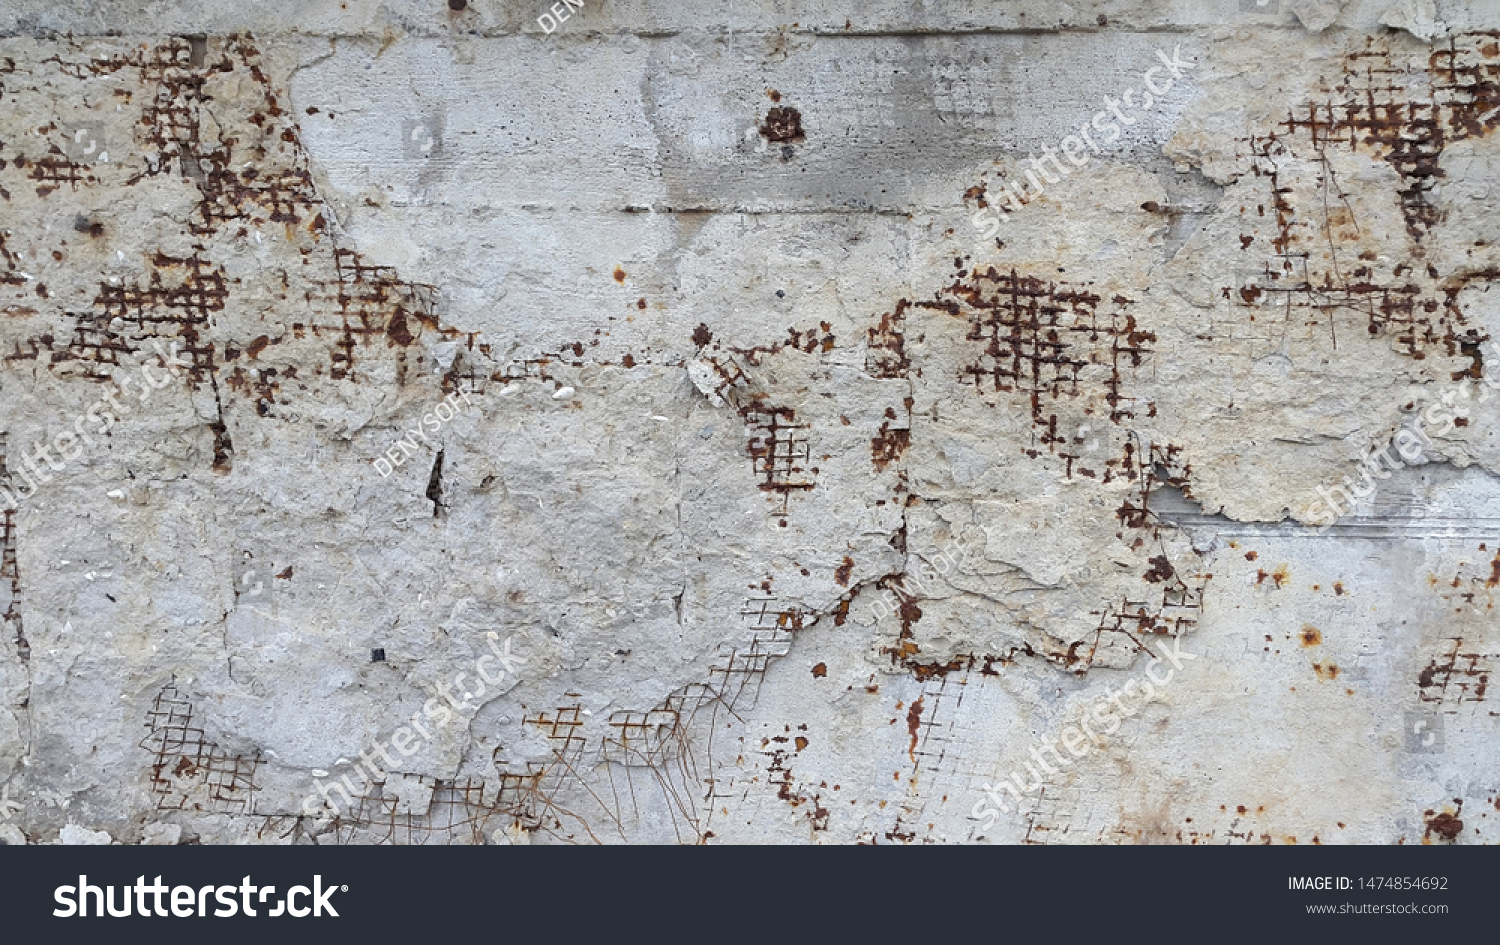 Concrete surface. Concrete. Destroyed concrete surface reinforced mesh. Vintage abstract background. Old destroyed concrete surface #1474854692